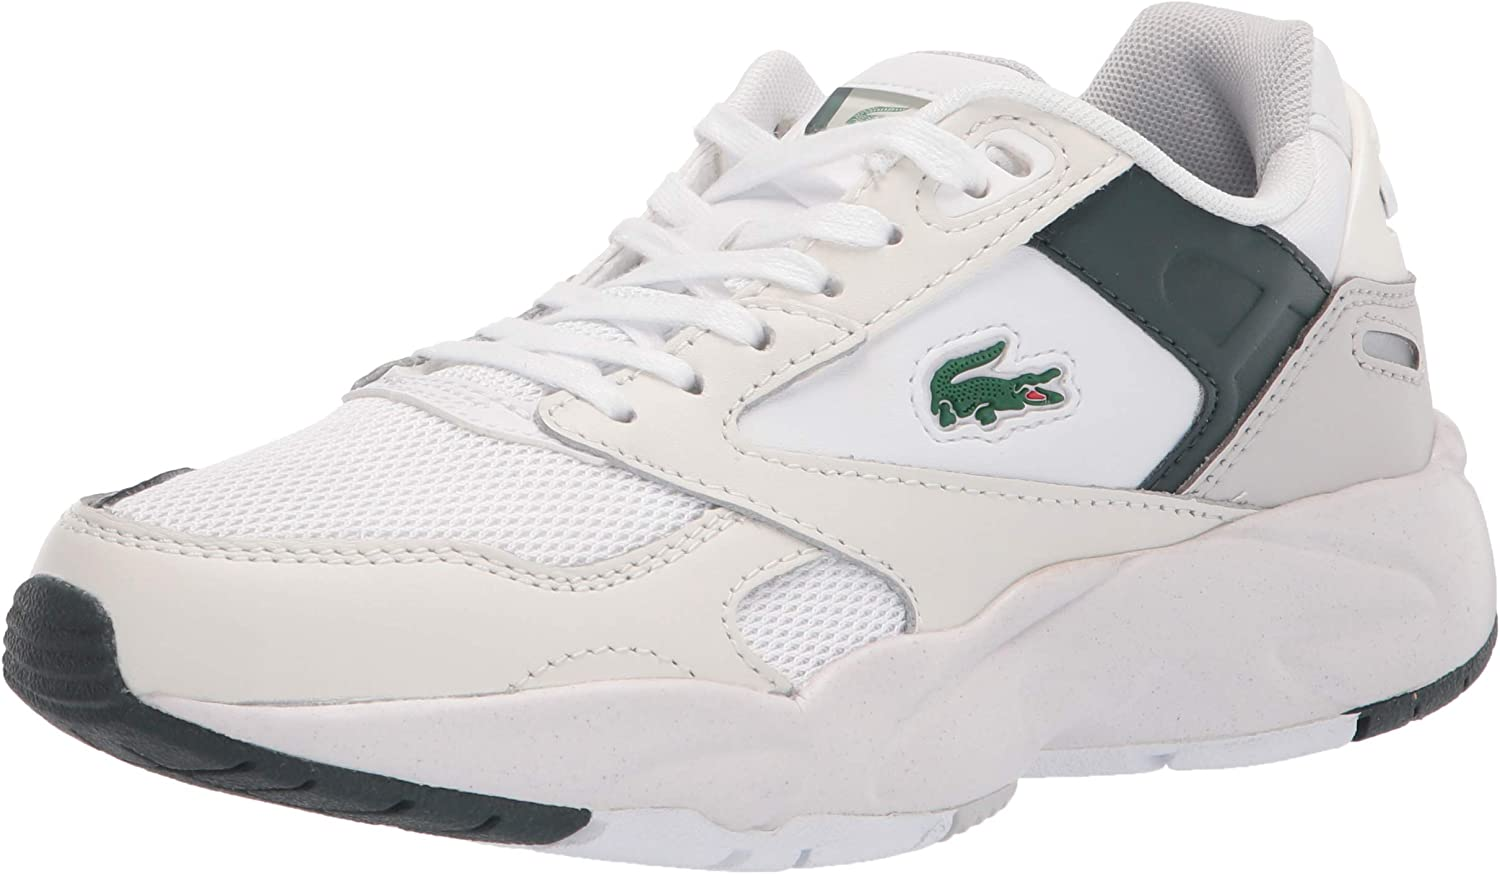 Oklahoma City Mall Lacoste Women's Storm Sneaker 96 Lo Popular brand in the world